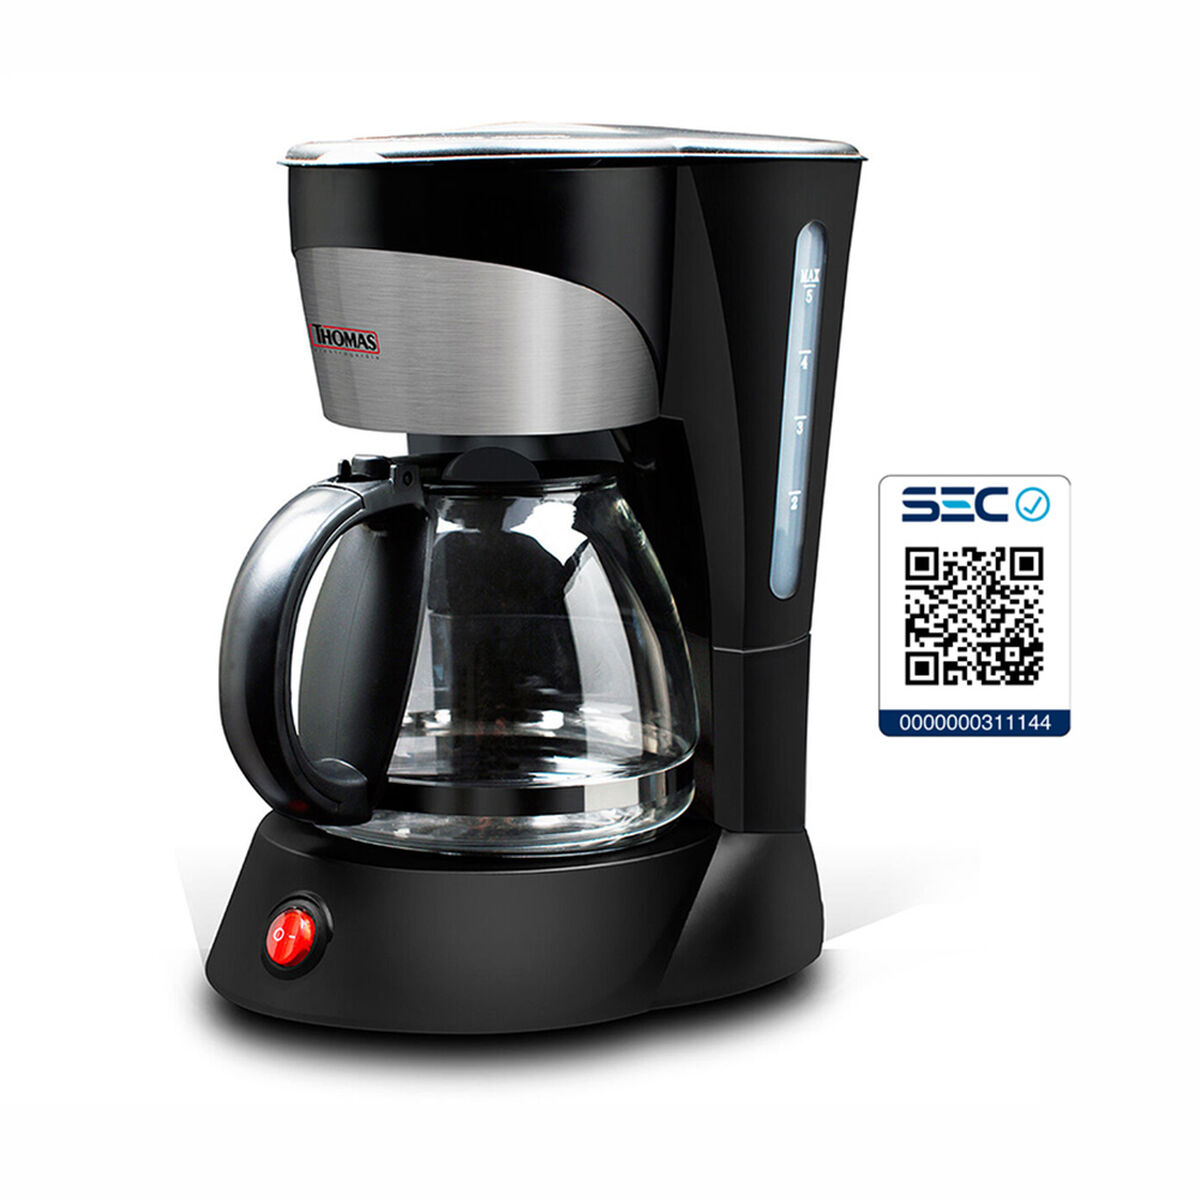 Cafetera Thomas TH-130 750 ml.